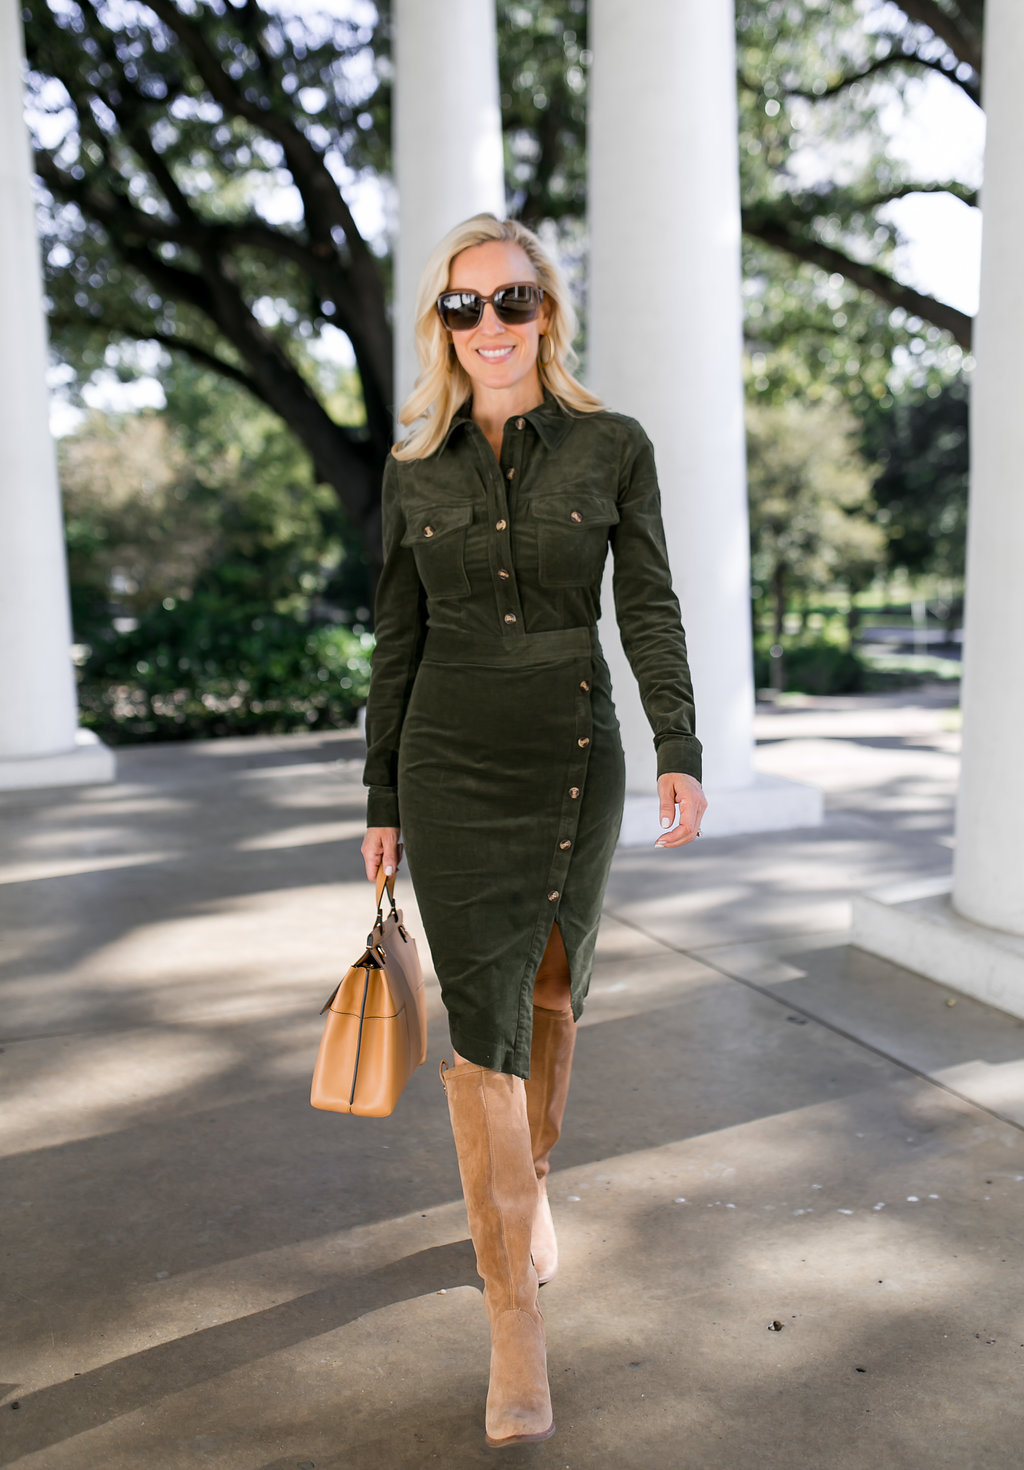 Alicia Wood, Dallas Lifestyle Blogger, Dallas Fashion blog, Veronica Beard Dress, Veronica Beard Britton Dress, Tall Ugg Boots, Tory Burch T Block Satchel